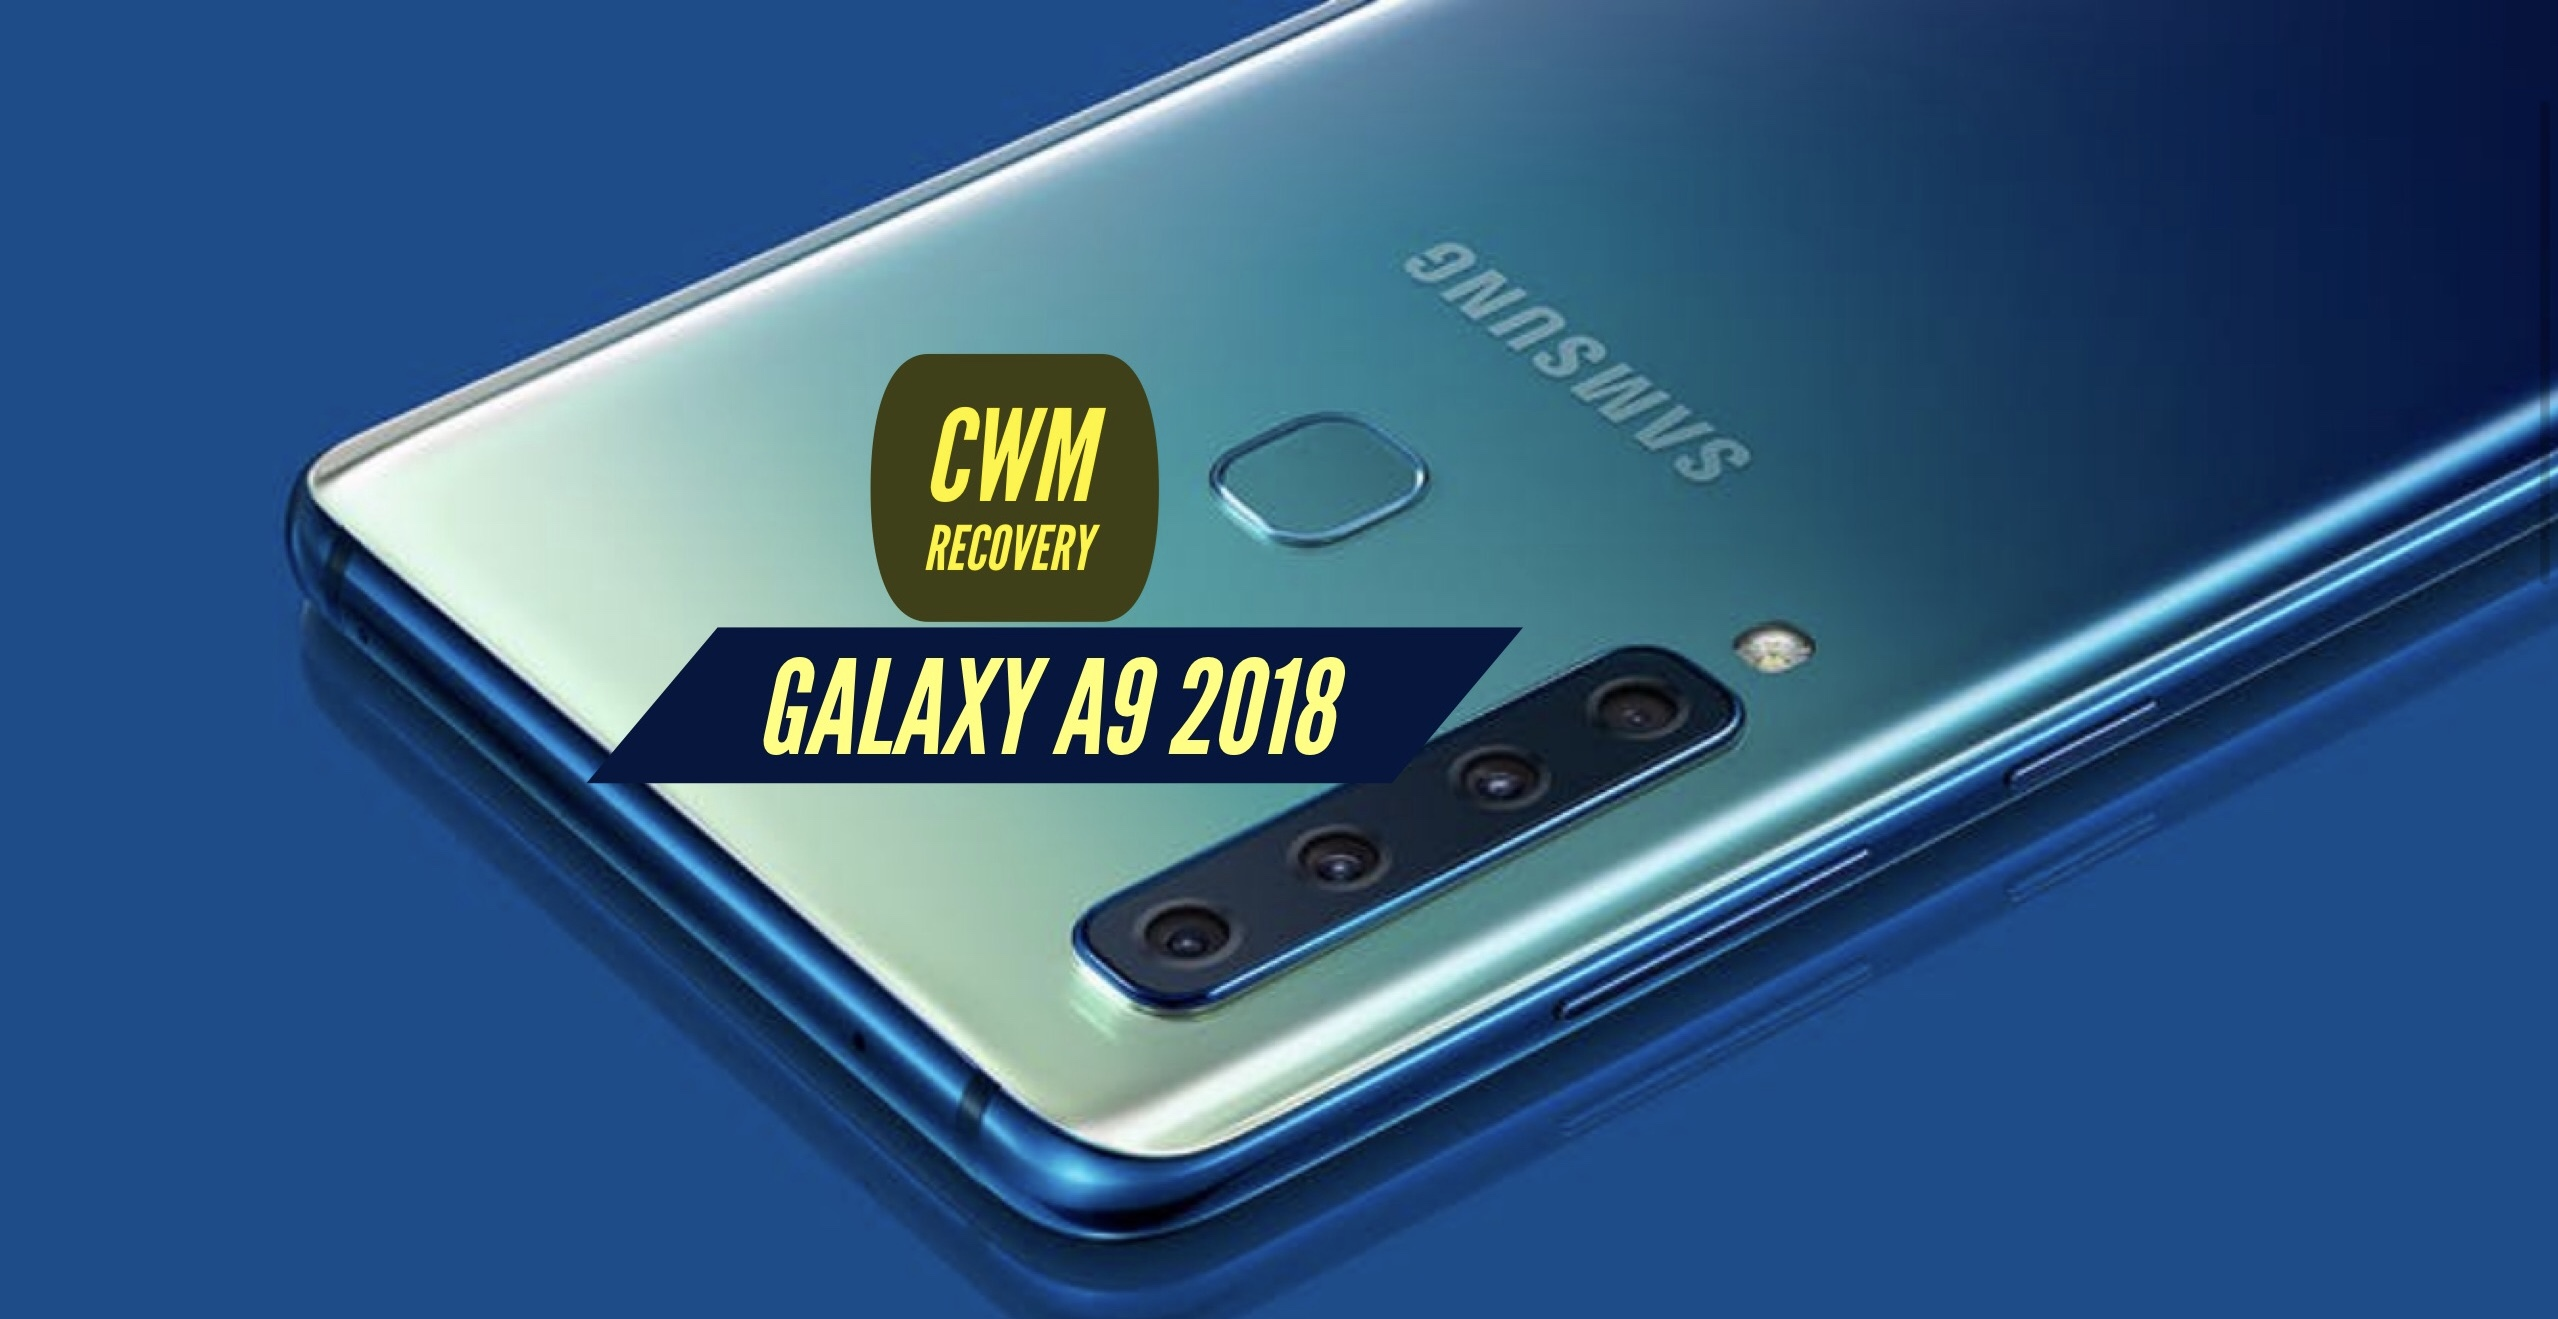 How to Install CWM Recovery on Samsung Galaxy A9 2018?